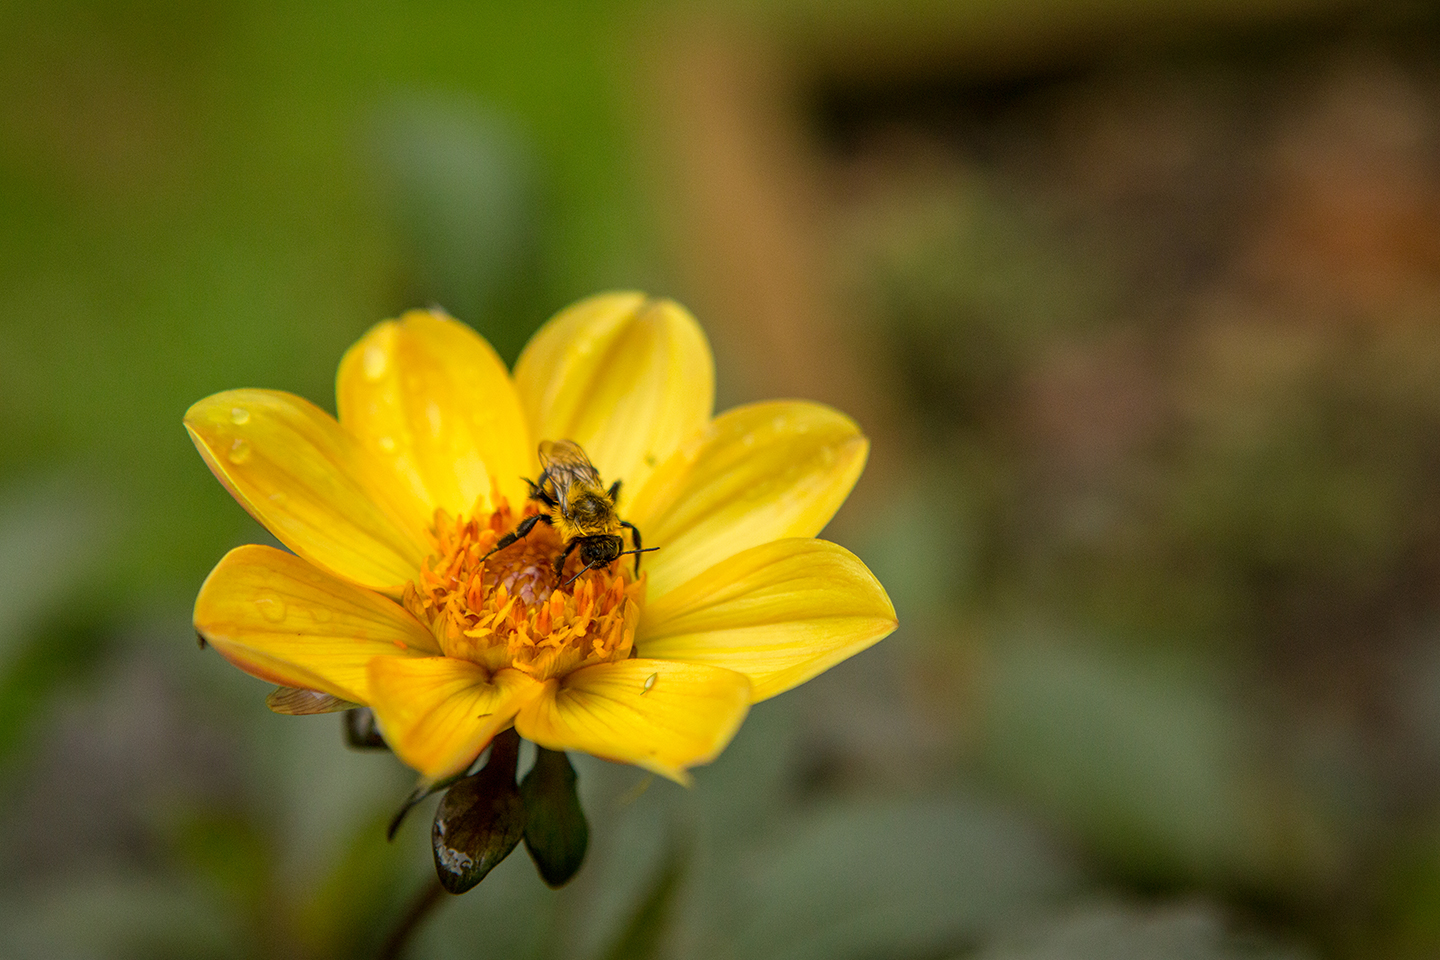 Yellow-Dahlia-with-an-Insect-4.jpg